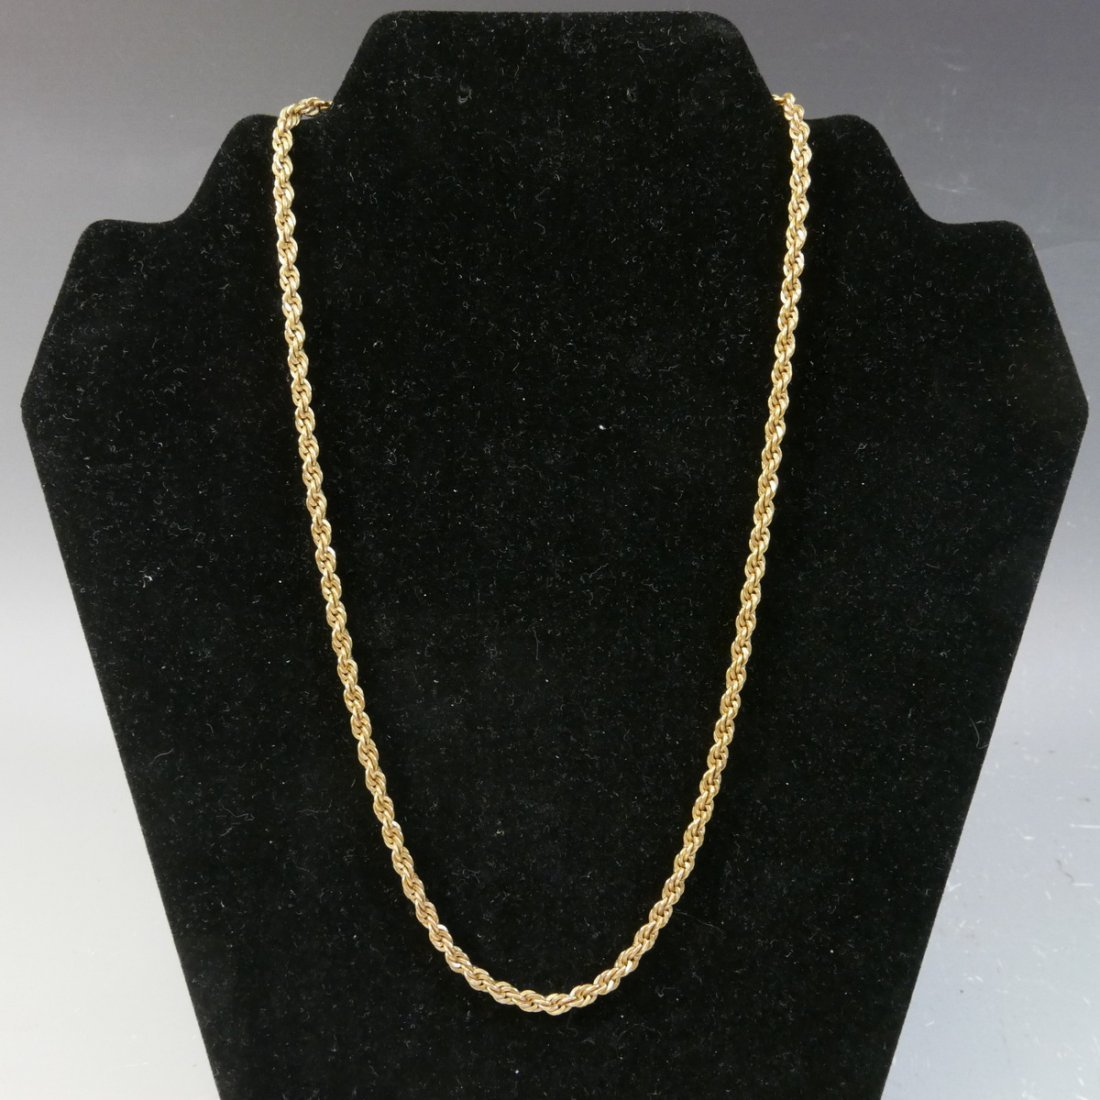 14K GOLD CHAIN NECKLACE - 20 GRAMS